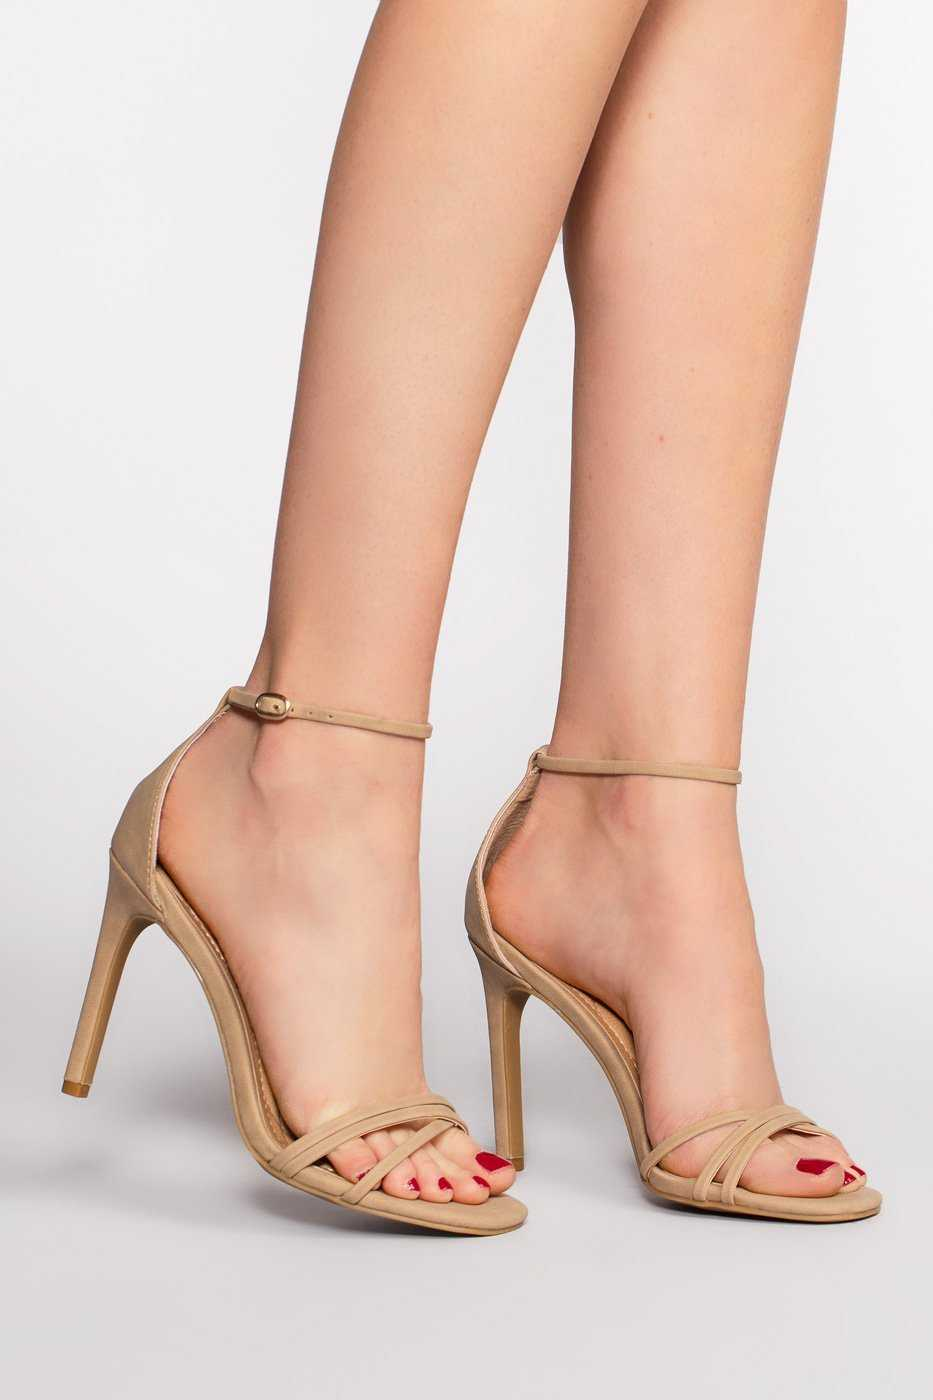 Shoes - Timeless Heels - Natural